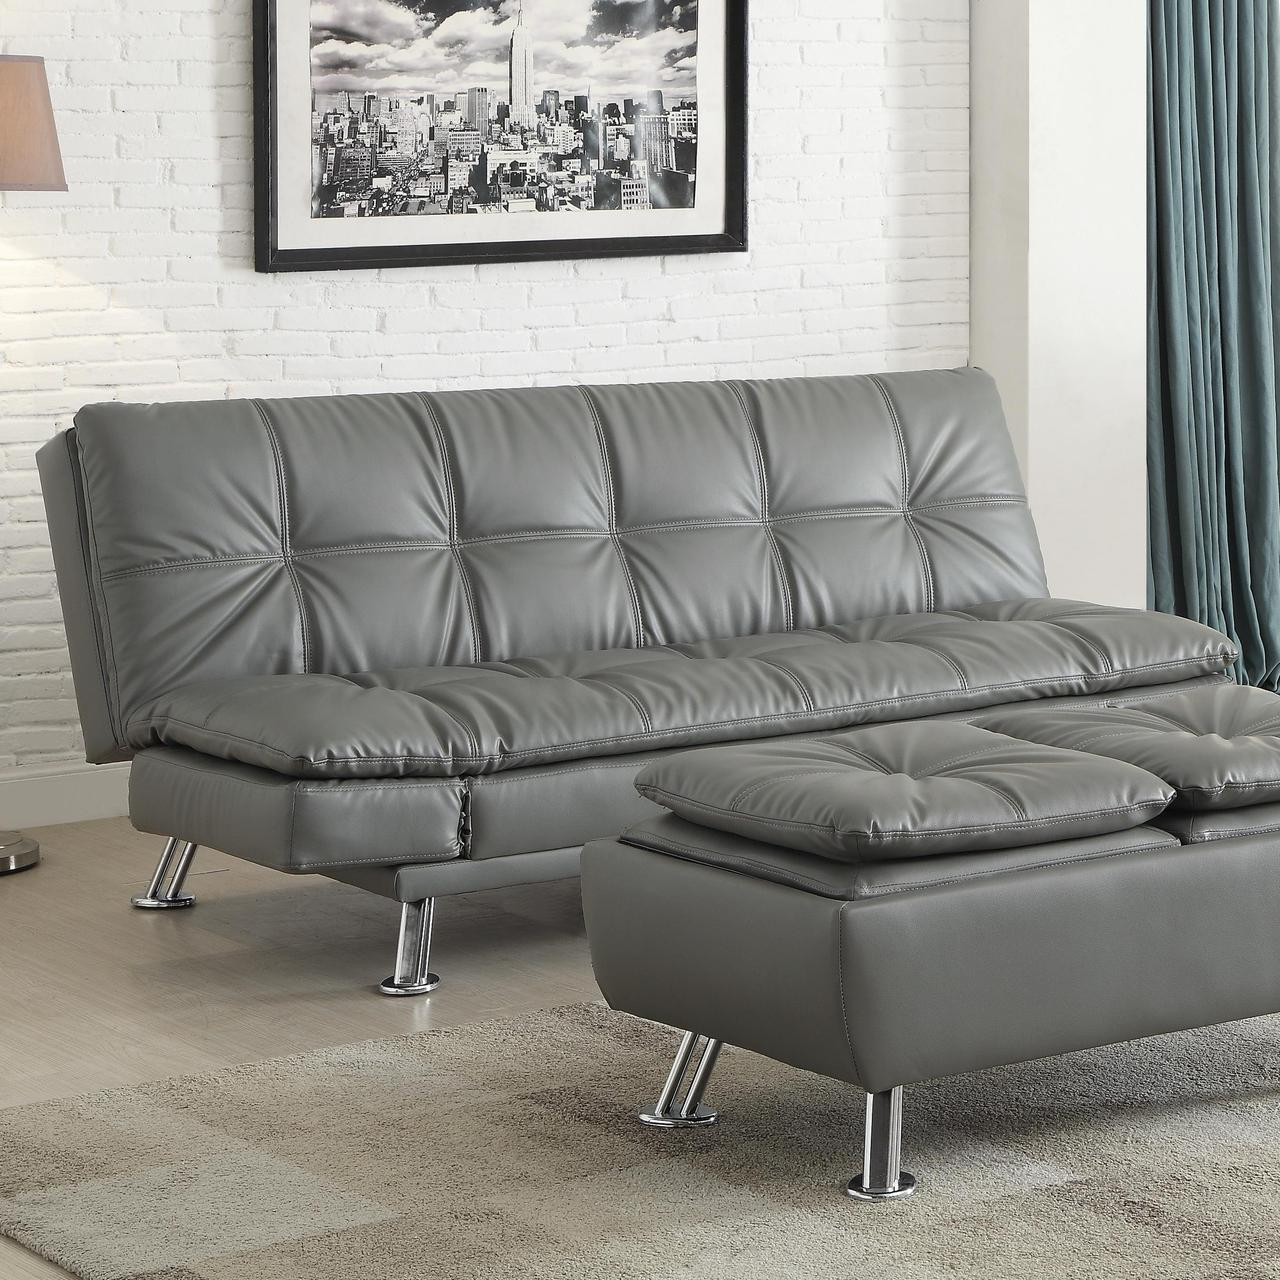 Admirable Odell Grey Leather Sofa Bed Interior Design Ideas Gentotthenellocom